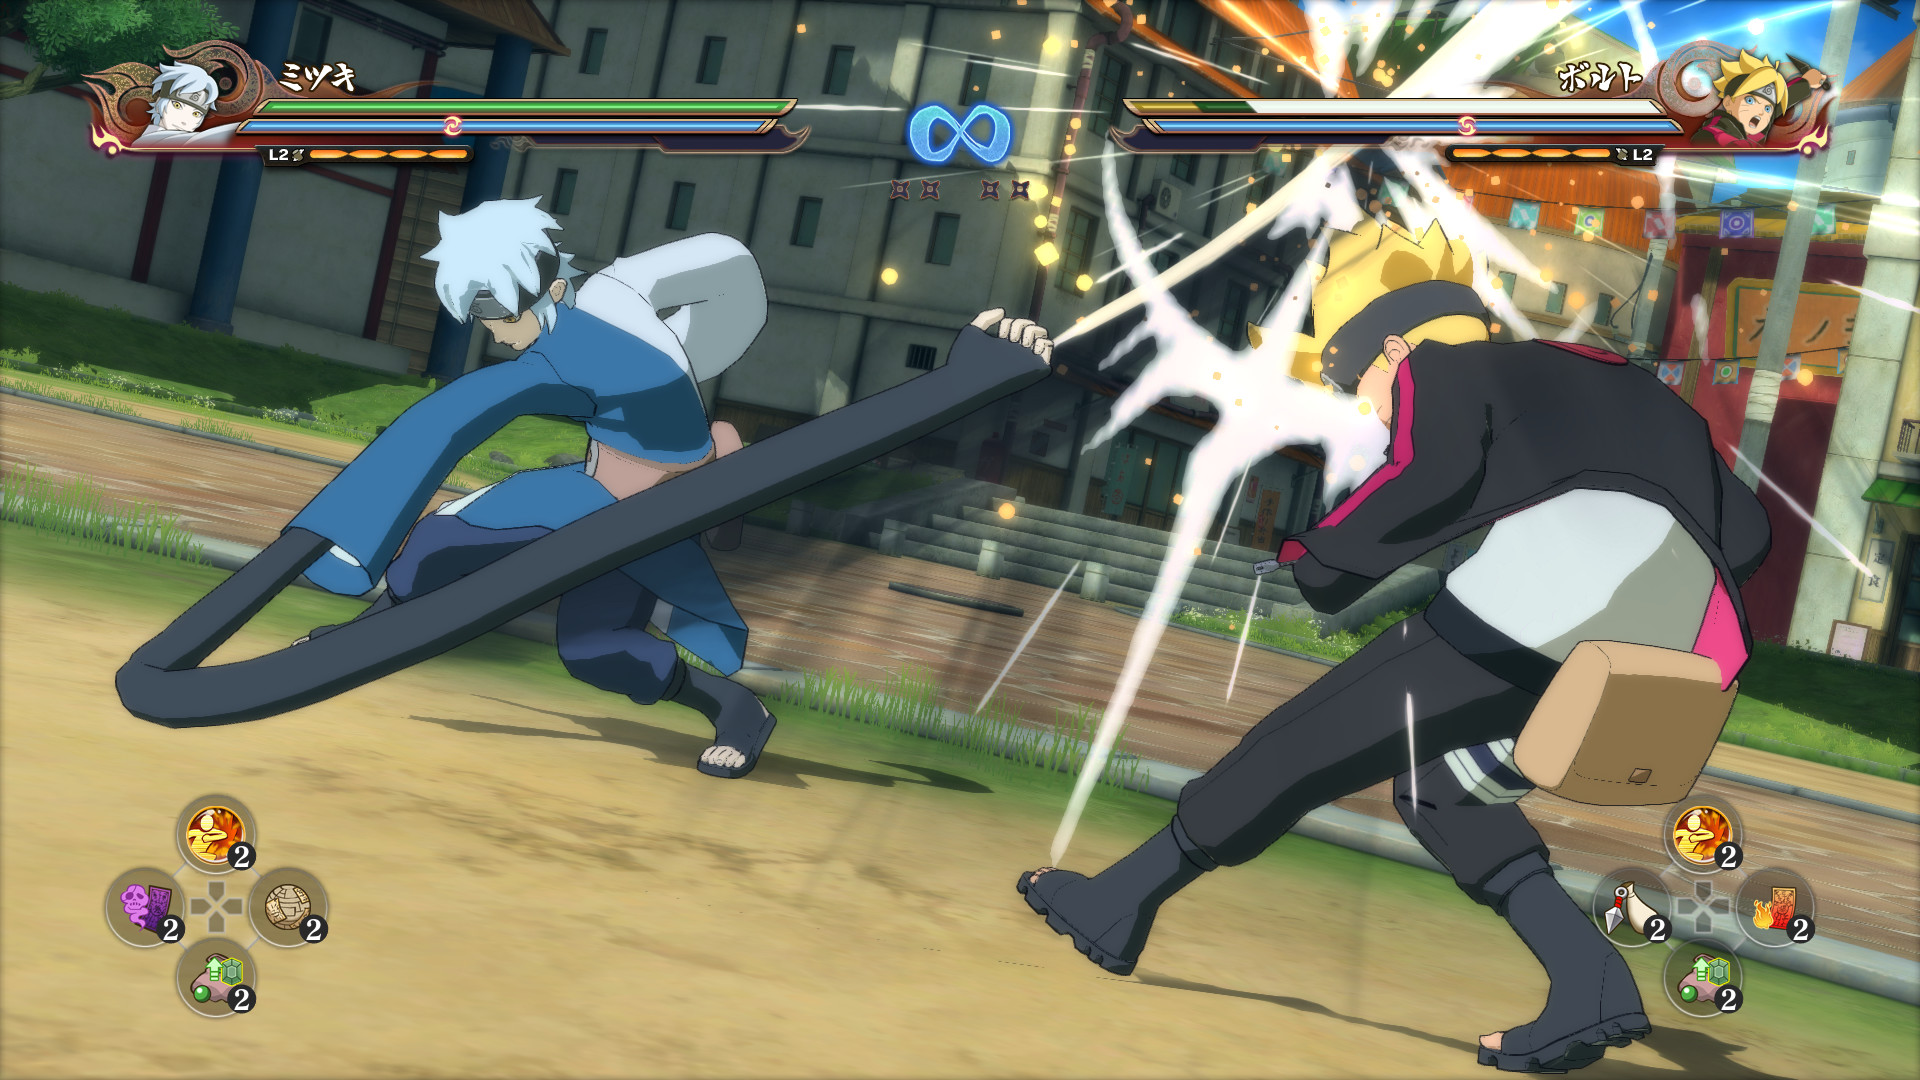 Game fix / crack: naruto shippuden: ultimate ninja storm 4.